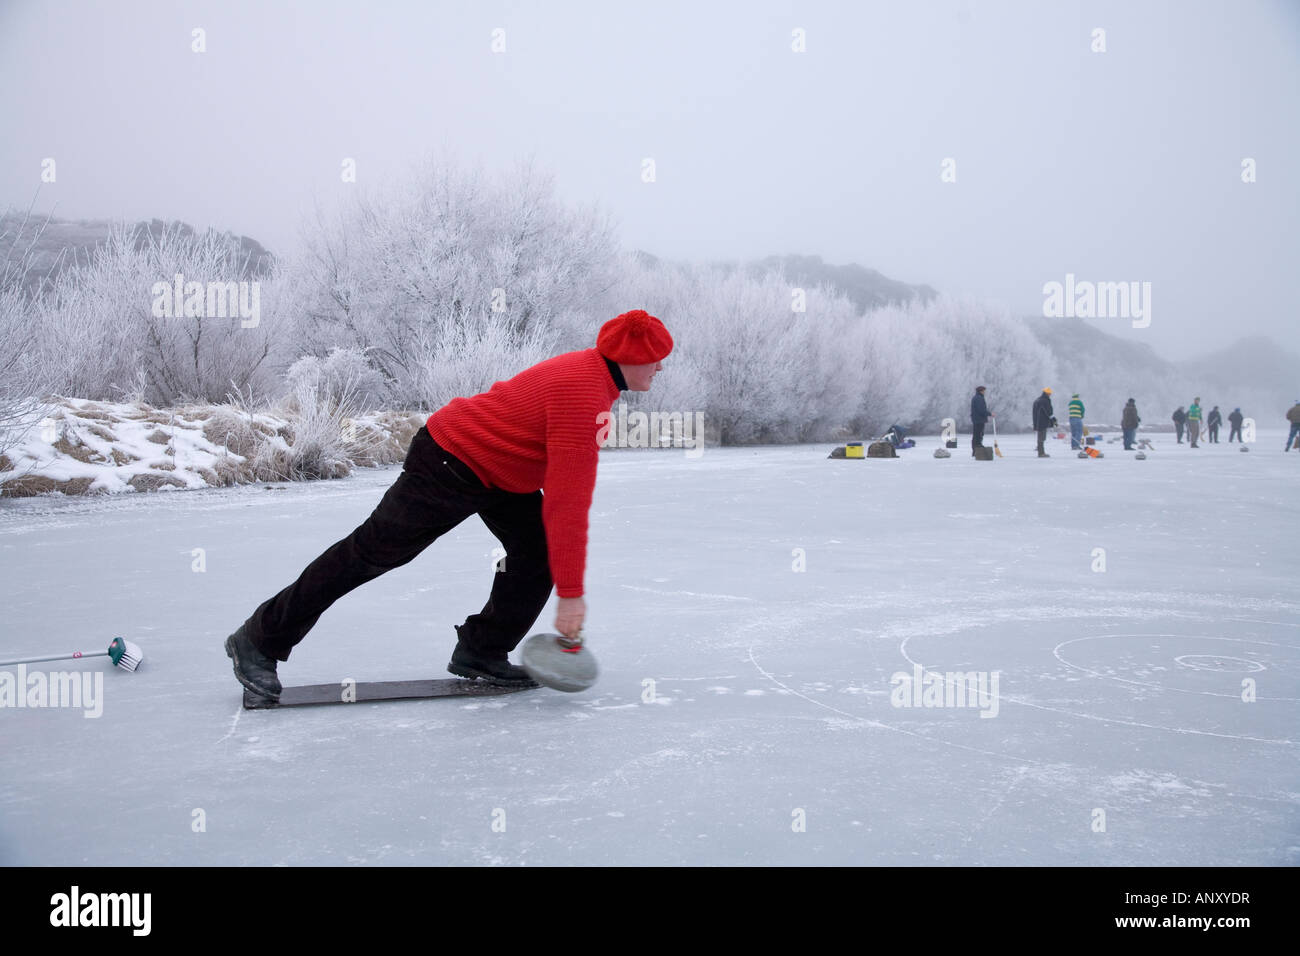 Mid winter curling on the Ida dam, Central Otago, New Zealand - Stock Image